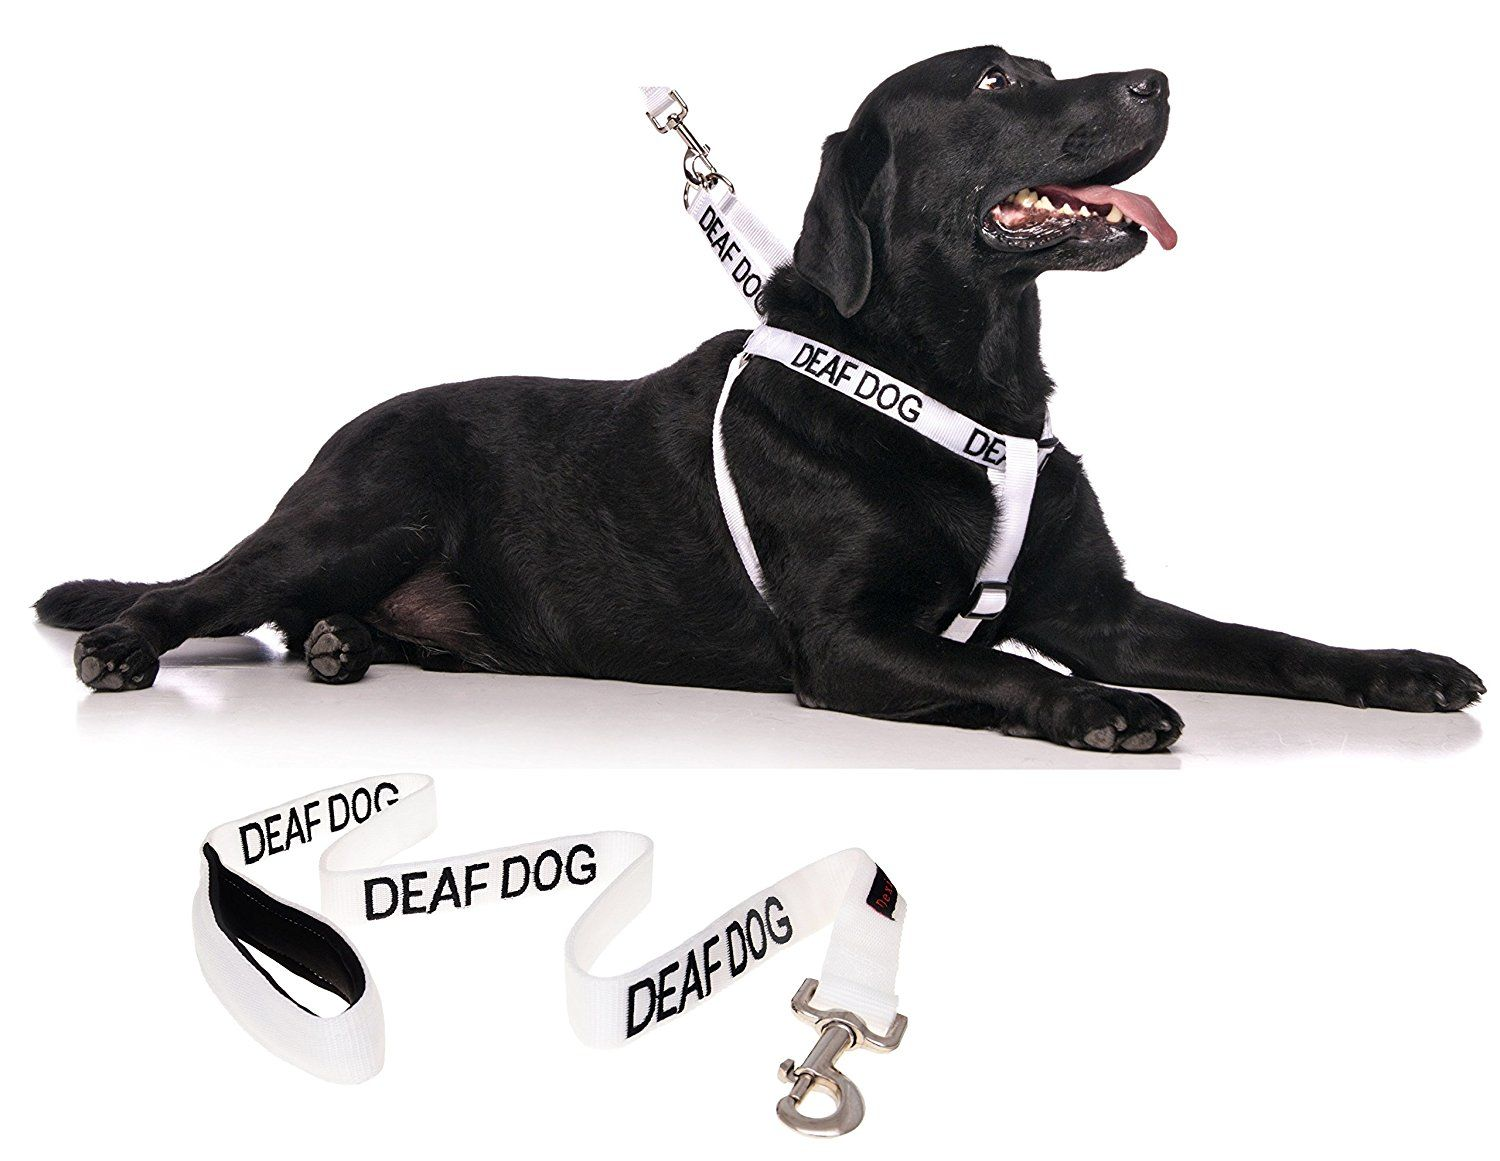 Deaf Dog White Color Coded L Xl Non Pull Dog Harness And 2 4 6 Foot Padded Leash Sets No Limited Hearing Prevents Accidents By Warn Dog Harness Deaf Dog Dogs